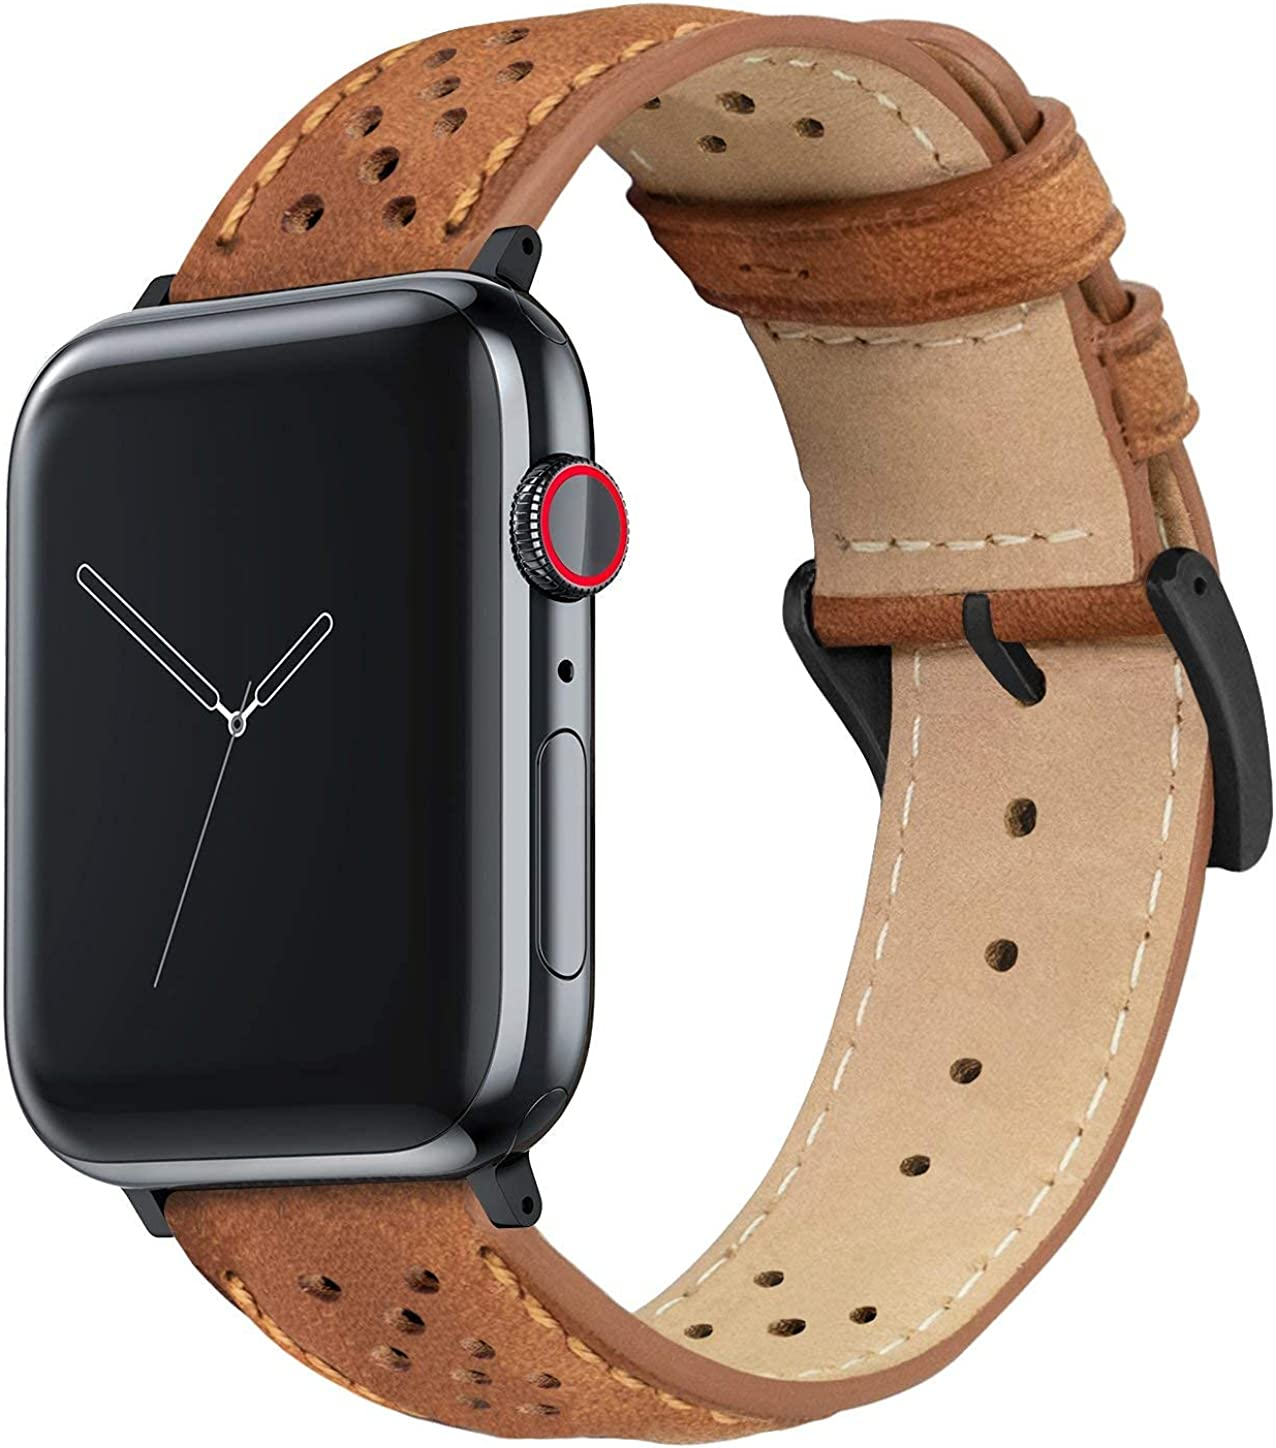 BARTON Racing & Rally Horween Leather Watch Bands with Integrated quick release spring bars - Compatible with all Apple Watch Models - Series 5, 4, 3, 2 & 1 - Size 38mm, 40mm, 42mm or 44mm